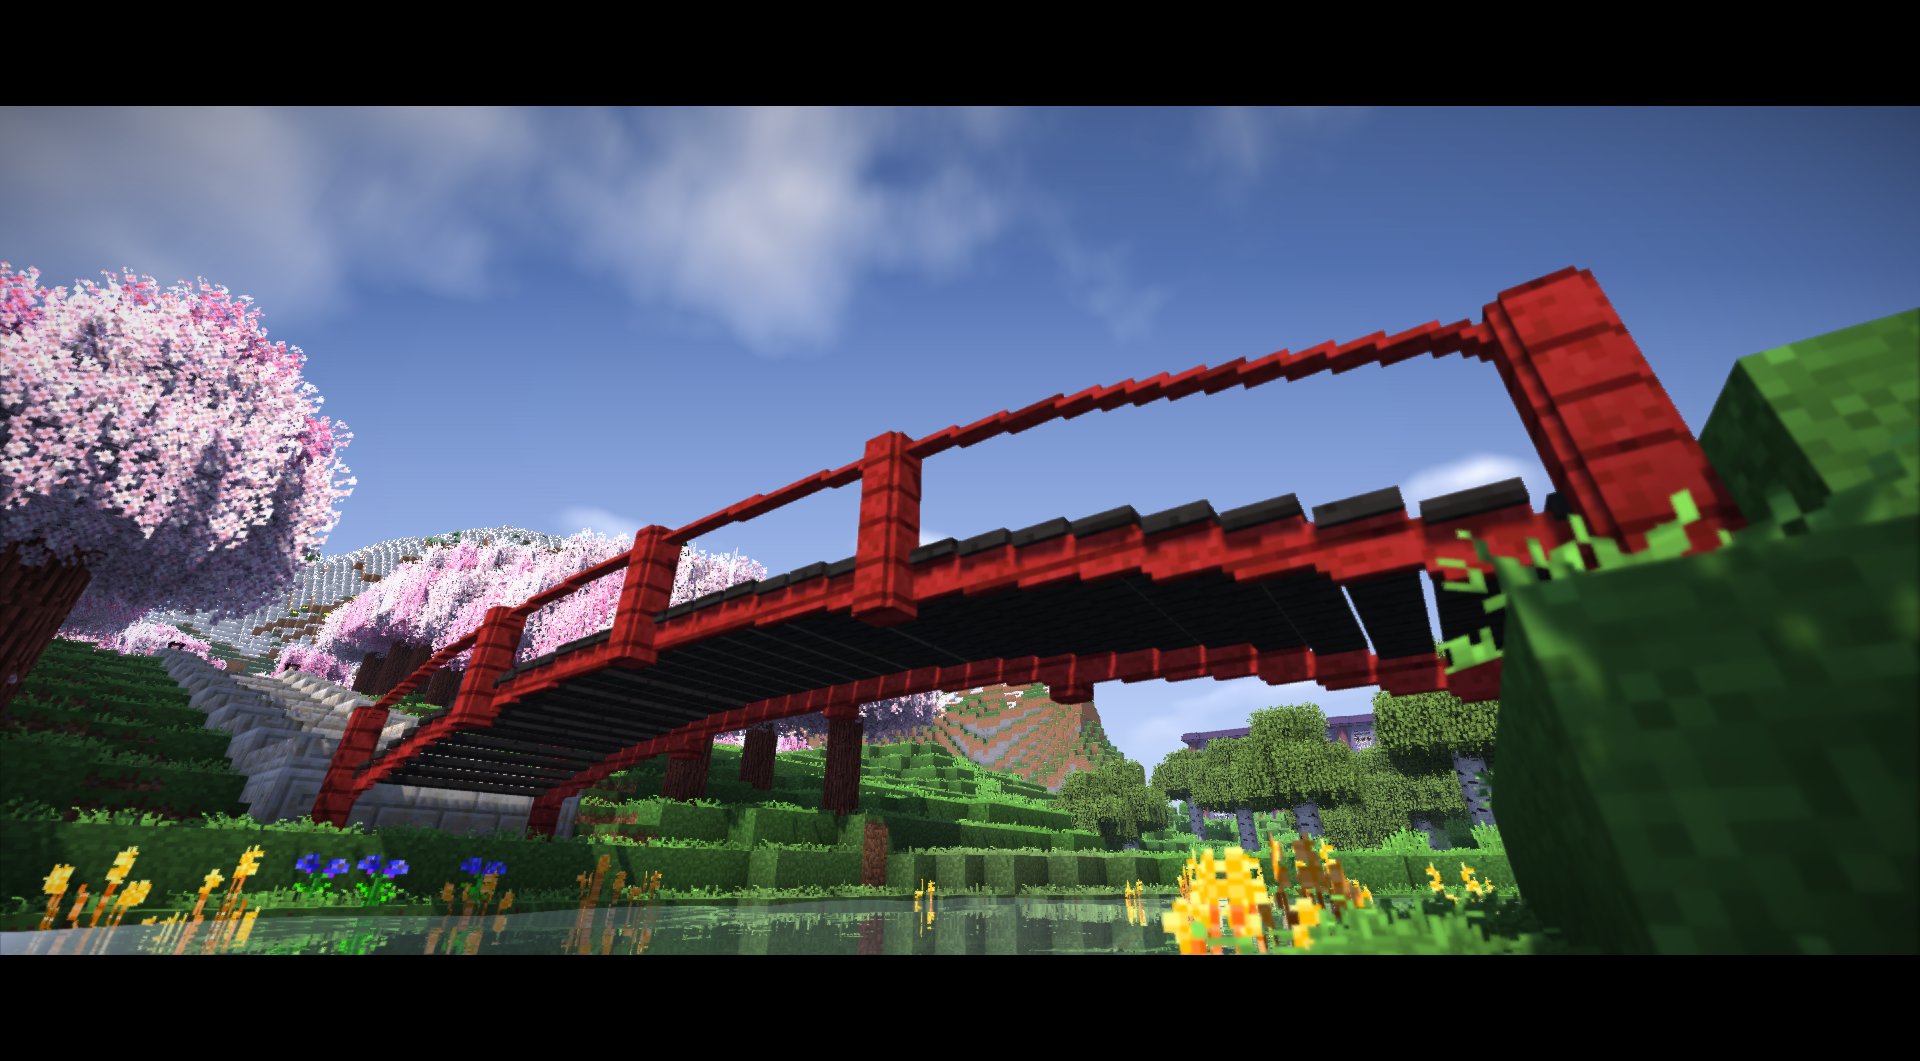 2016 06 08_193910 - Minecraft Japanese Bridge